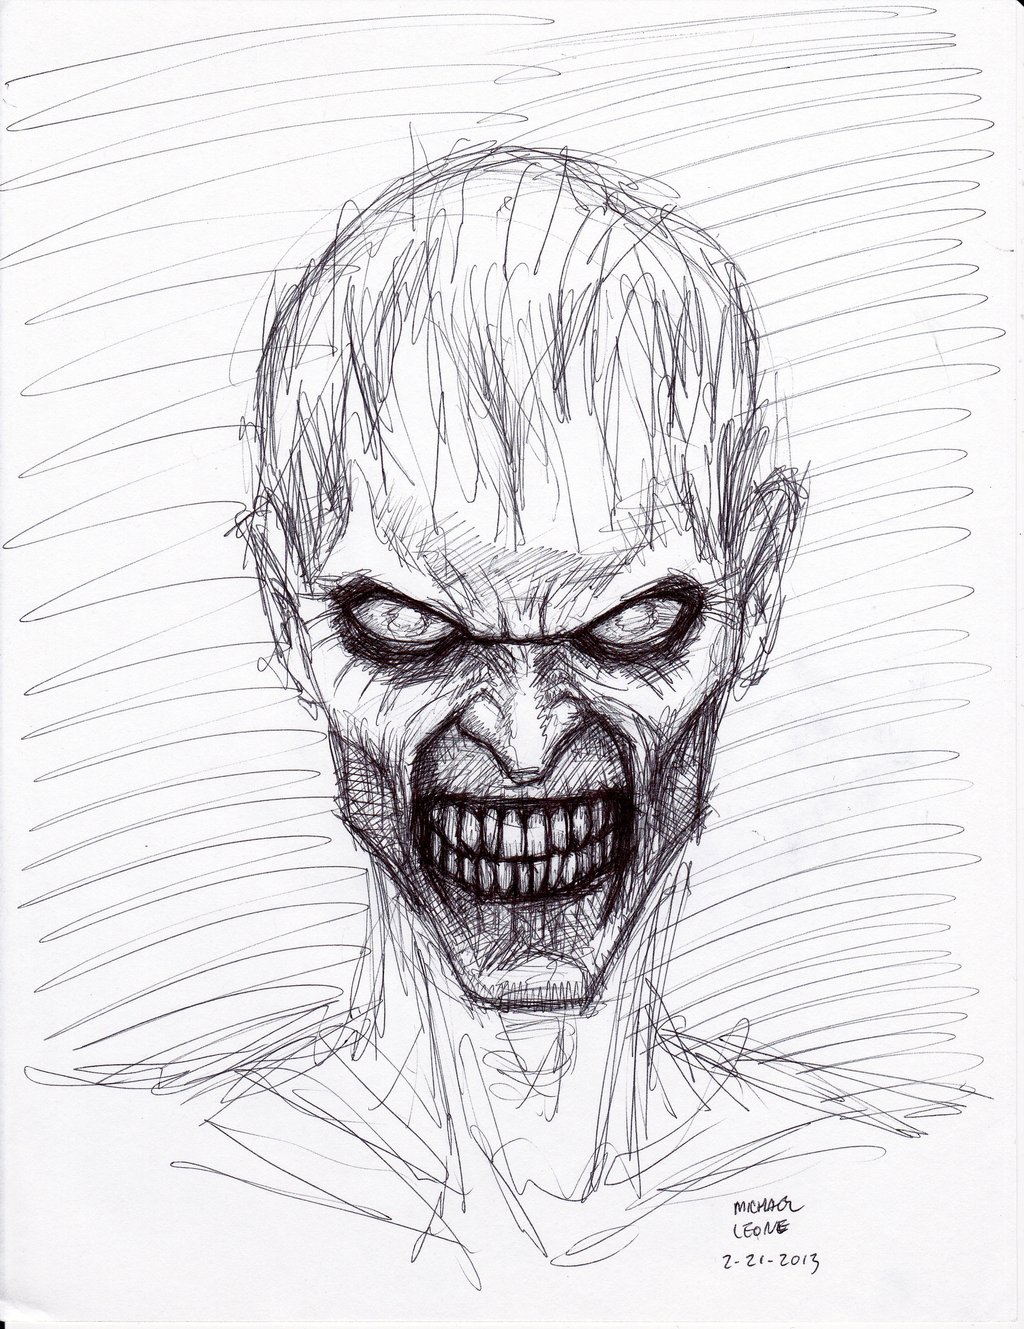 1024x1329 Zombie drawings in pencil Zombie Pen Sketch 2 21 2013 By